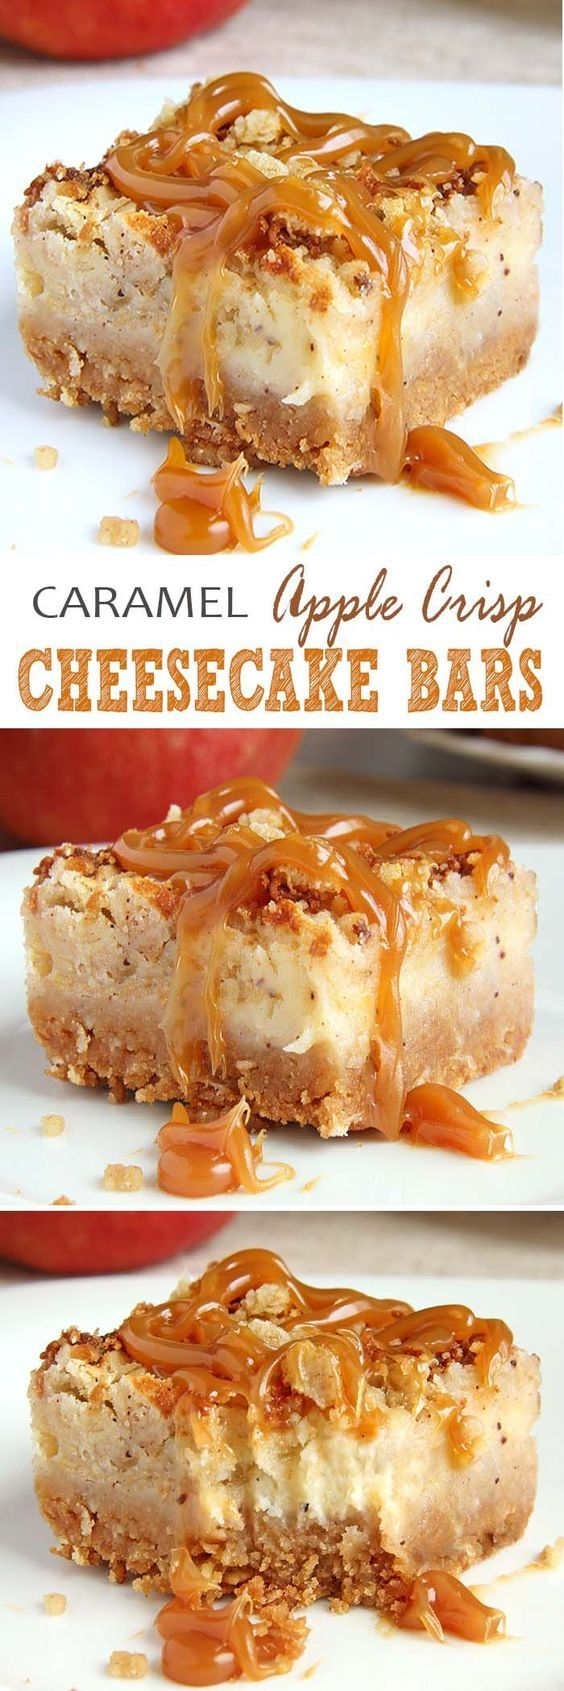 Caramel Apple Crisp Cheesecake Bars Dessert Recipe via Sugar Apron - These Caramel Apple Crisp Cheesecake Bars are ideal choice in the autumn season, but also during holidays, which are knocking on the door. #dessertbars #cookiebars #barsrecipes #dessertforacrowd #partydesserts #christmasdesserts #holidaydesserts #onepandesserts